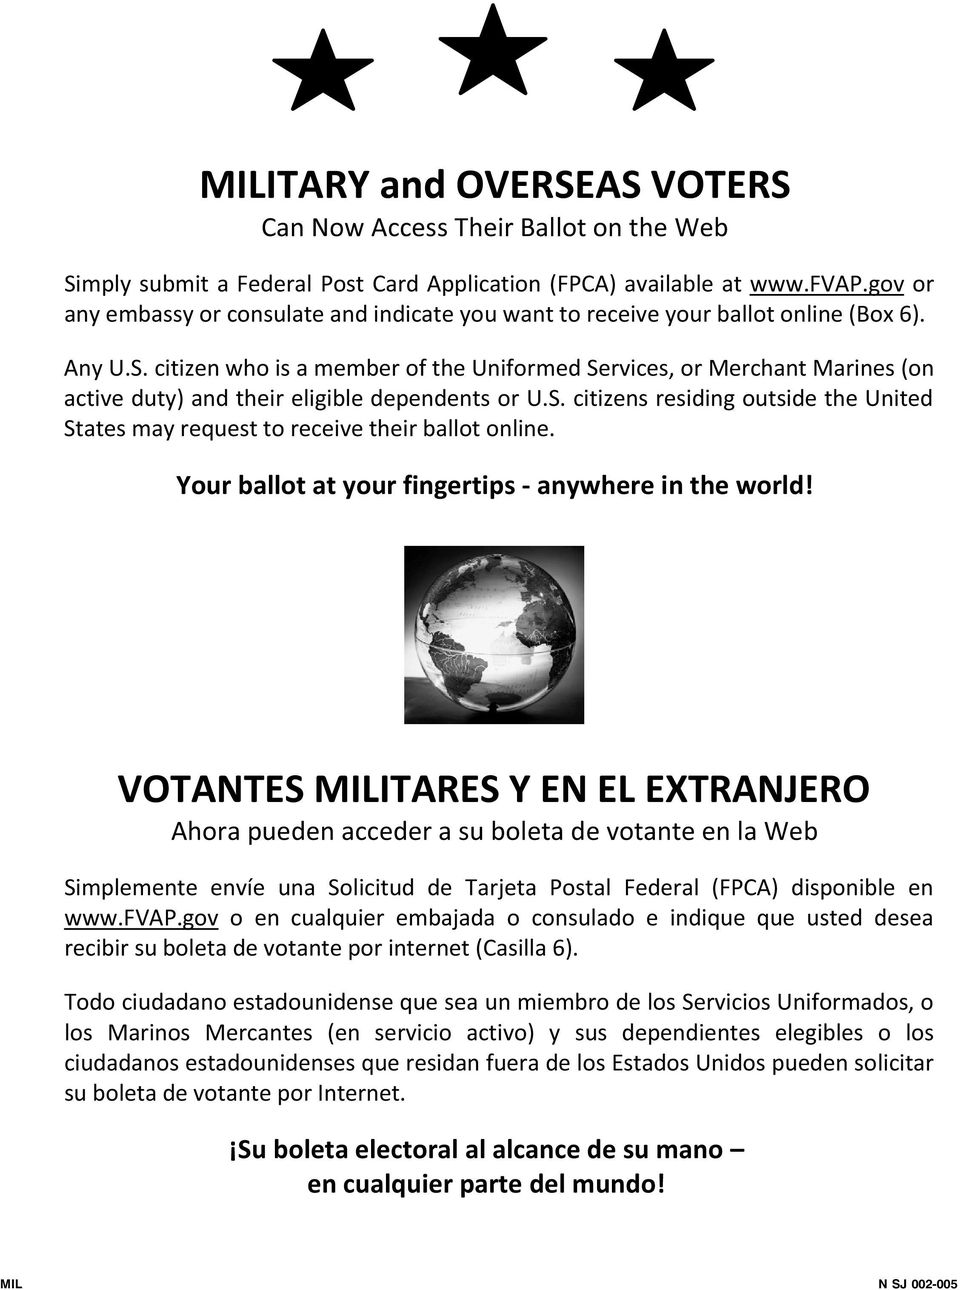 citizen who is a member of the Uniformed Services, or Merchant Marines (on active duty) and their eligible dependents or U.S. citizens residing outside the United States may request to receive their ballot online.